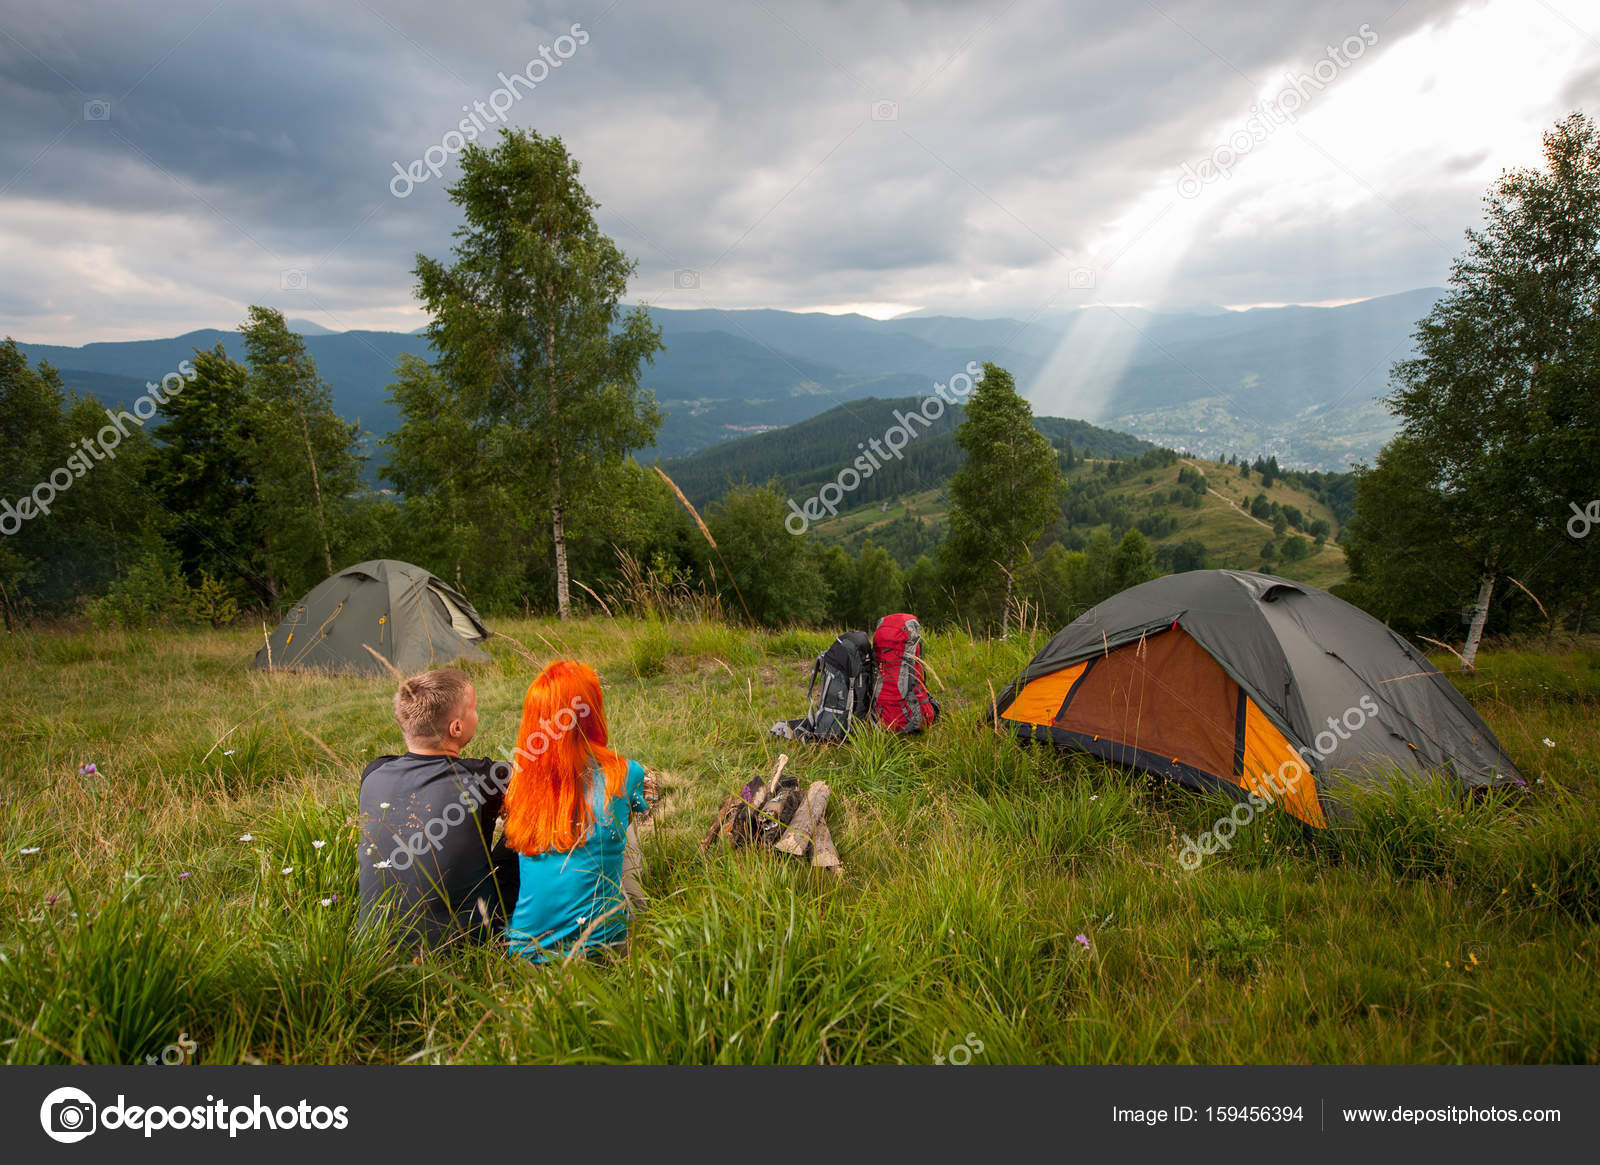 ... green grass near c&fire tents backpacks and looking into the distance on the hills mountains forest and punching the sunu0027s rays through a cloudy ... & Back view of couple sitting on the green grass near campfire ...